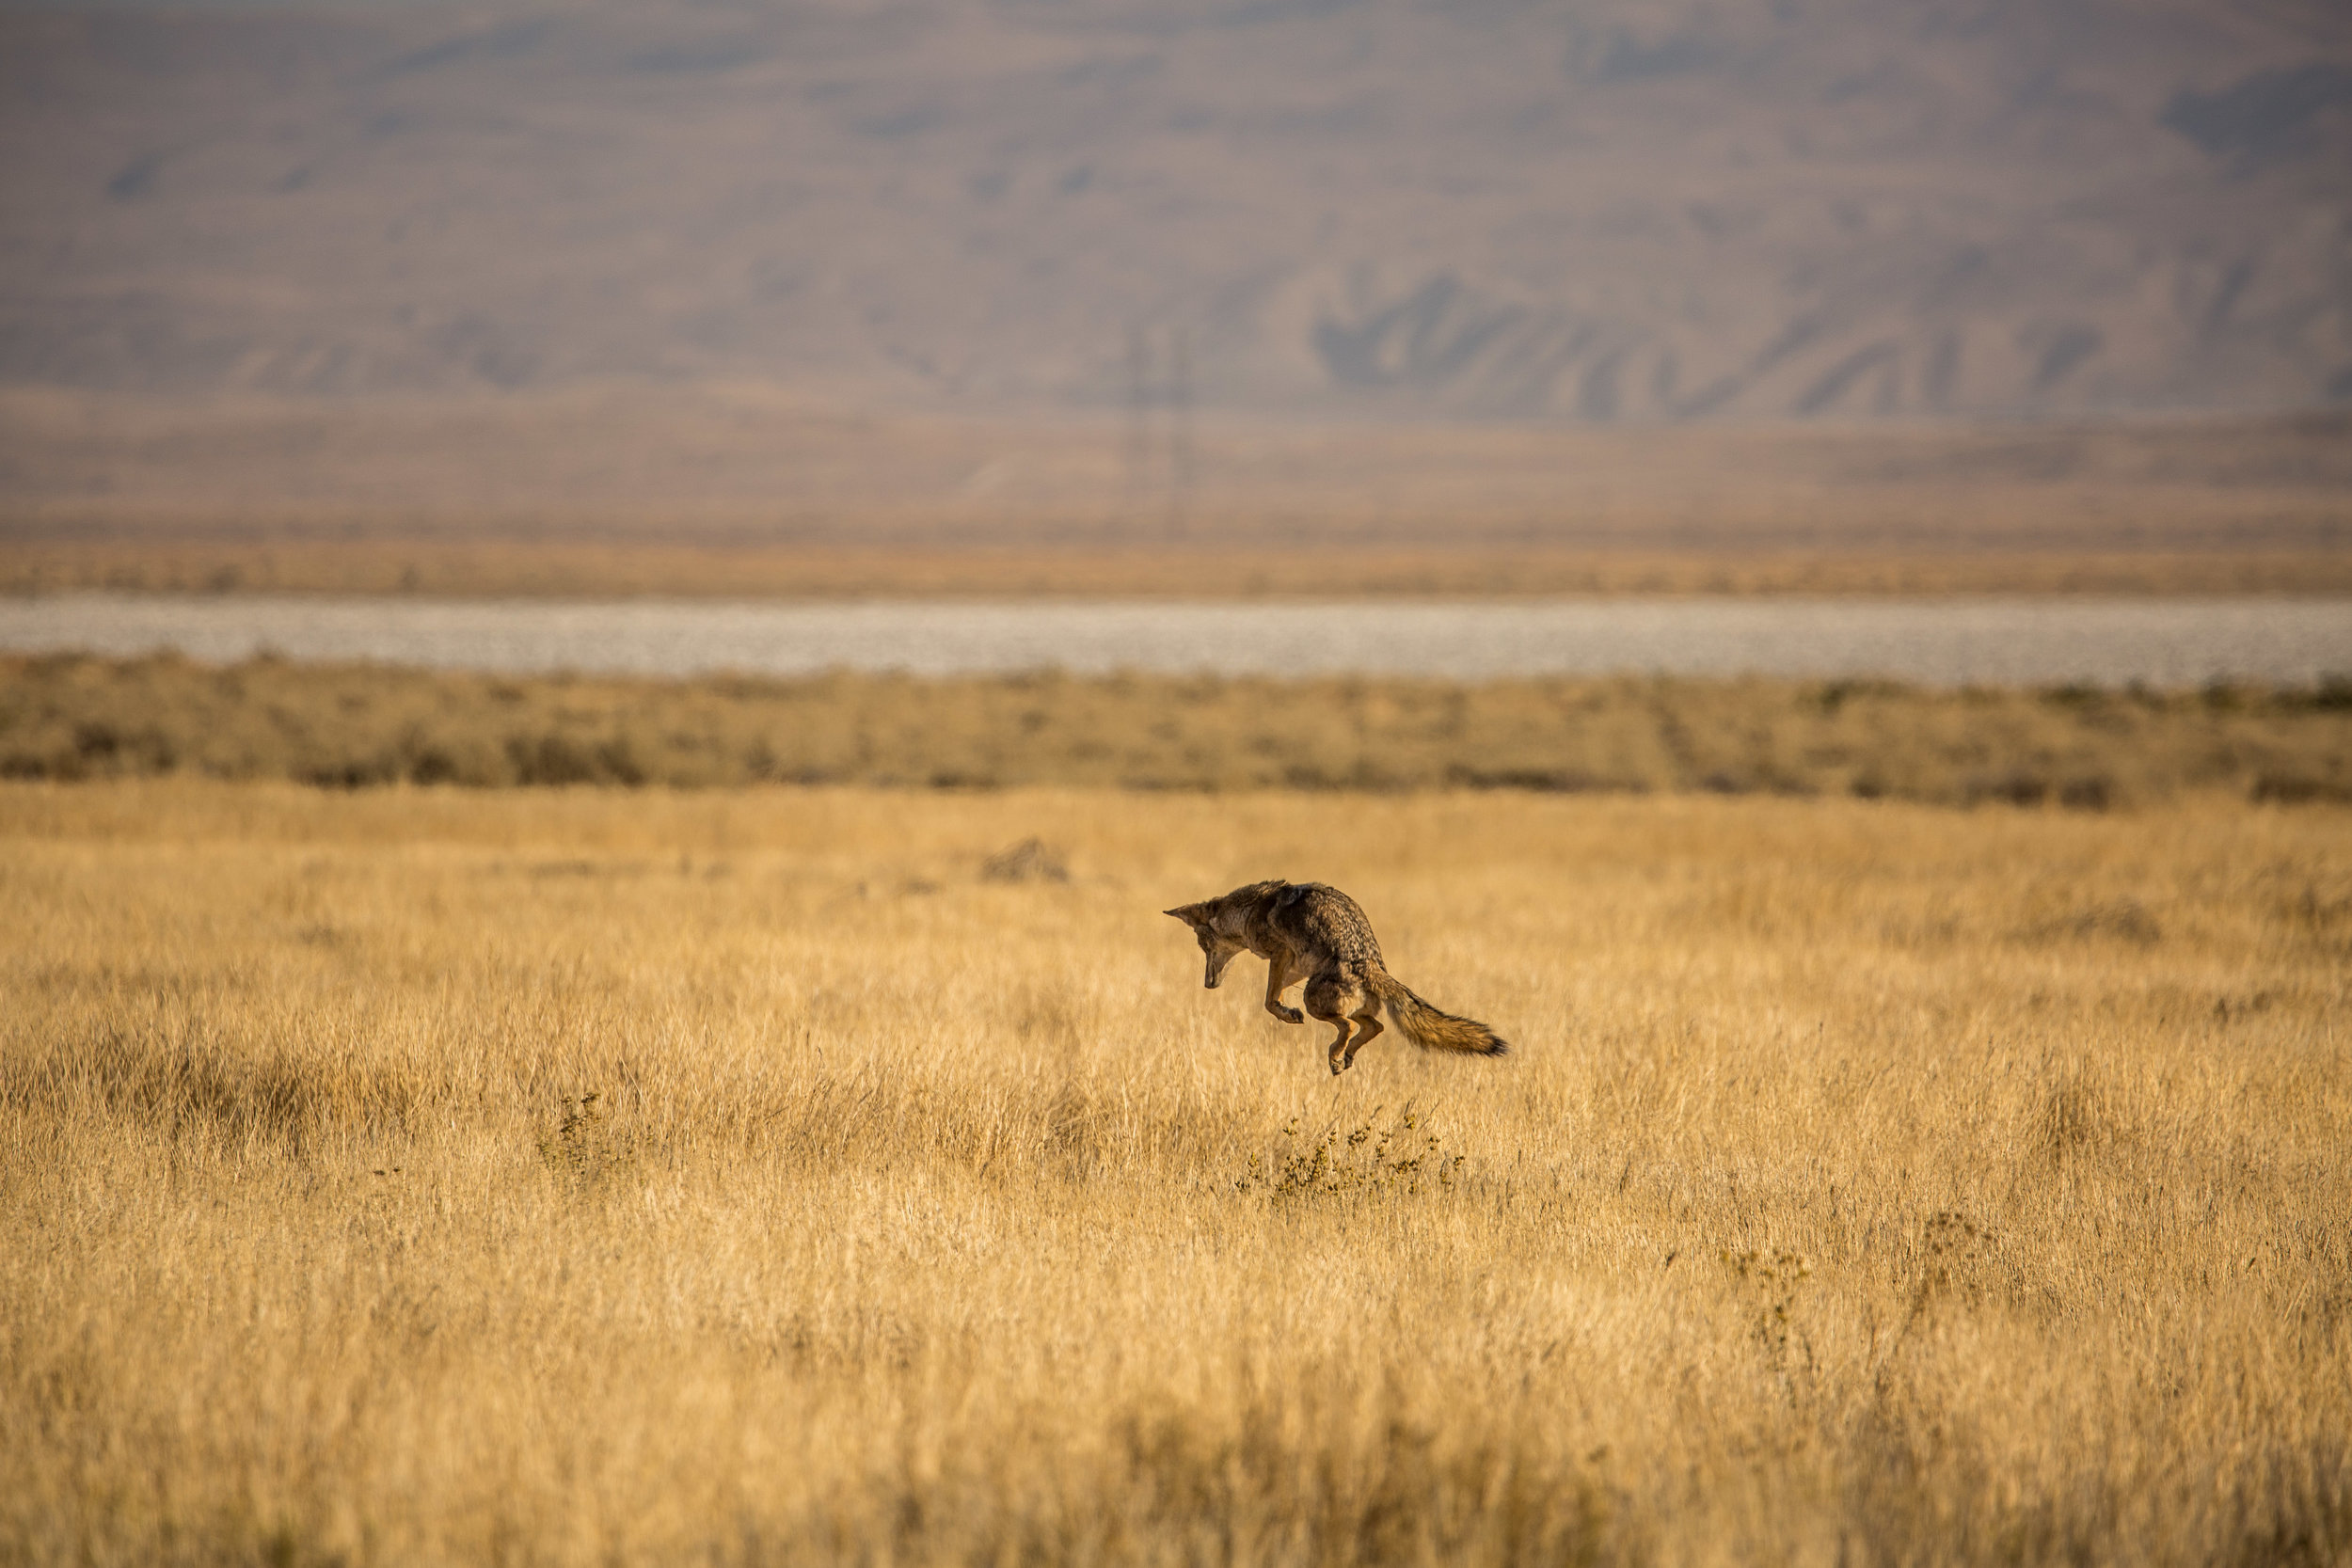 Coyote (Canis latrans) - A coyote hunting rodents among the grasses in the Carrizo